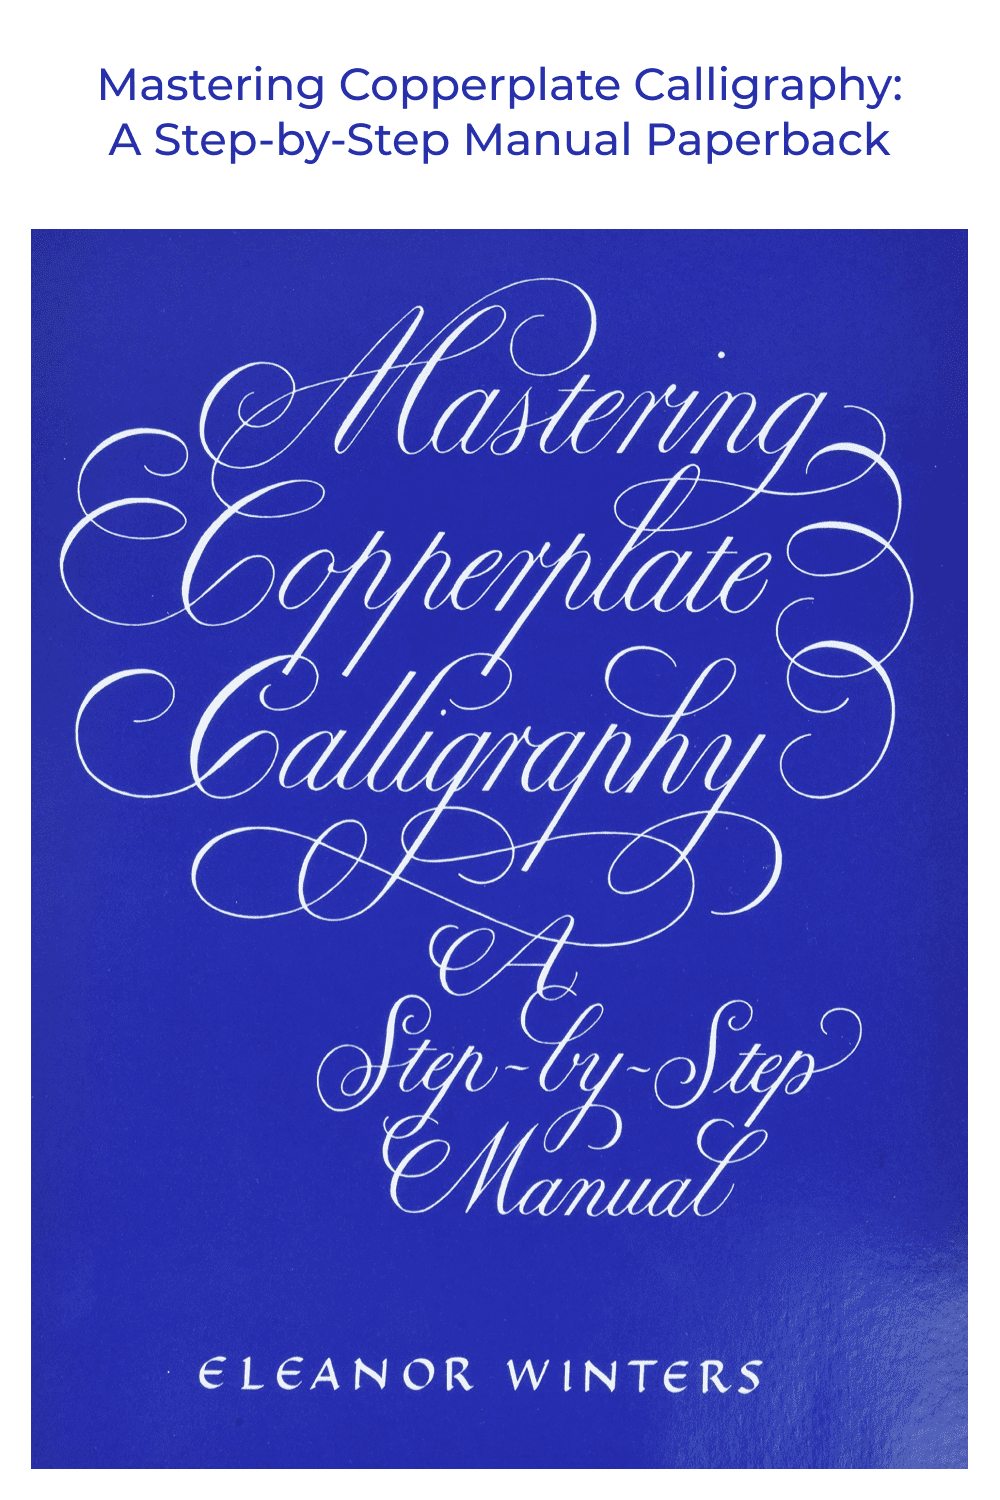 Developed by English handwriting masters in the 18th century, copperplate calligraphy is admired for its fluidity and beauty.